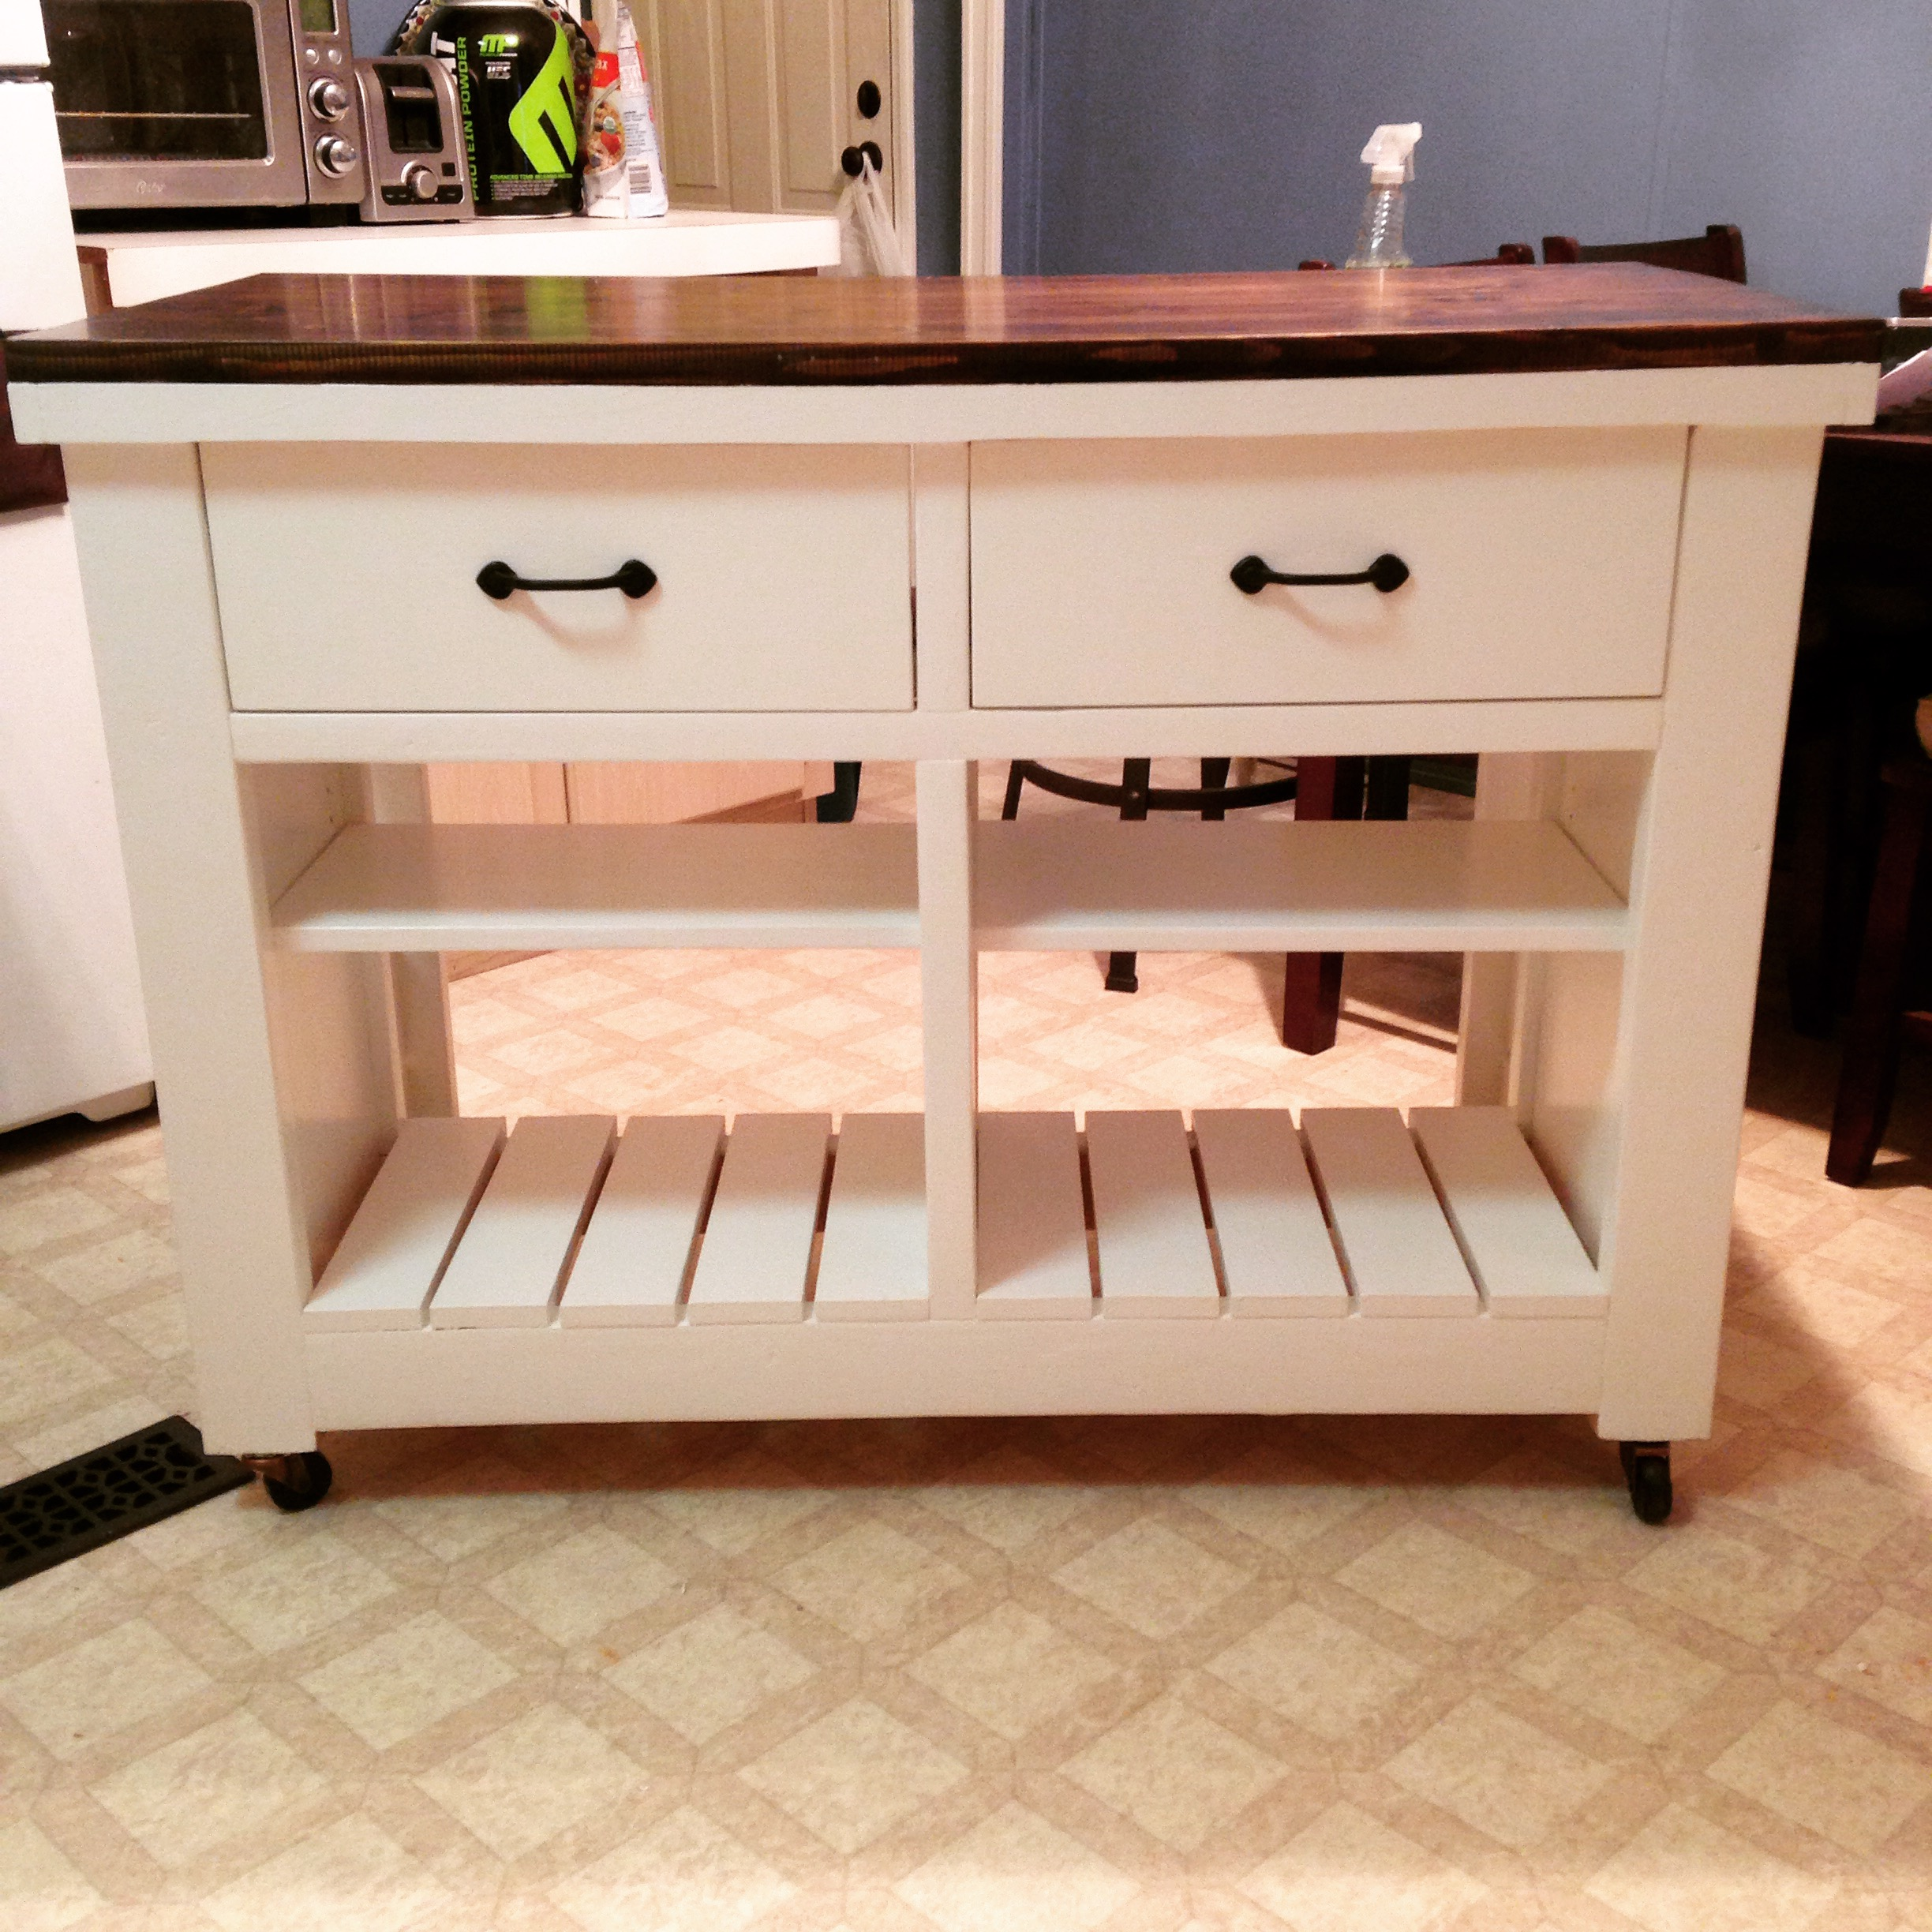 rustic diy dresser kitchen island idea | Ana White | Rustic Kitchen Island DIY - DIY Projects